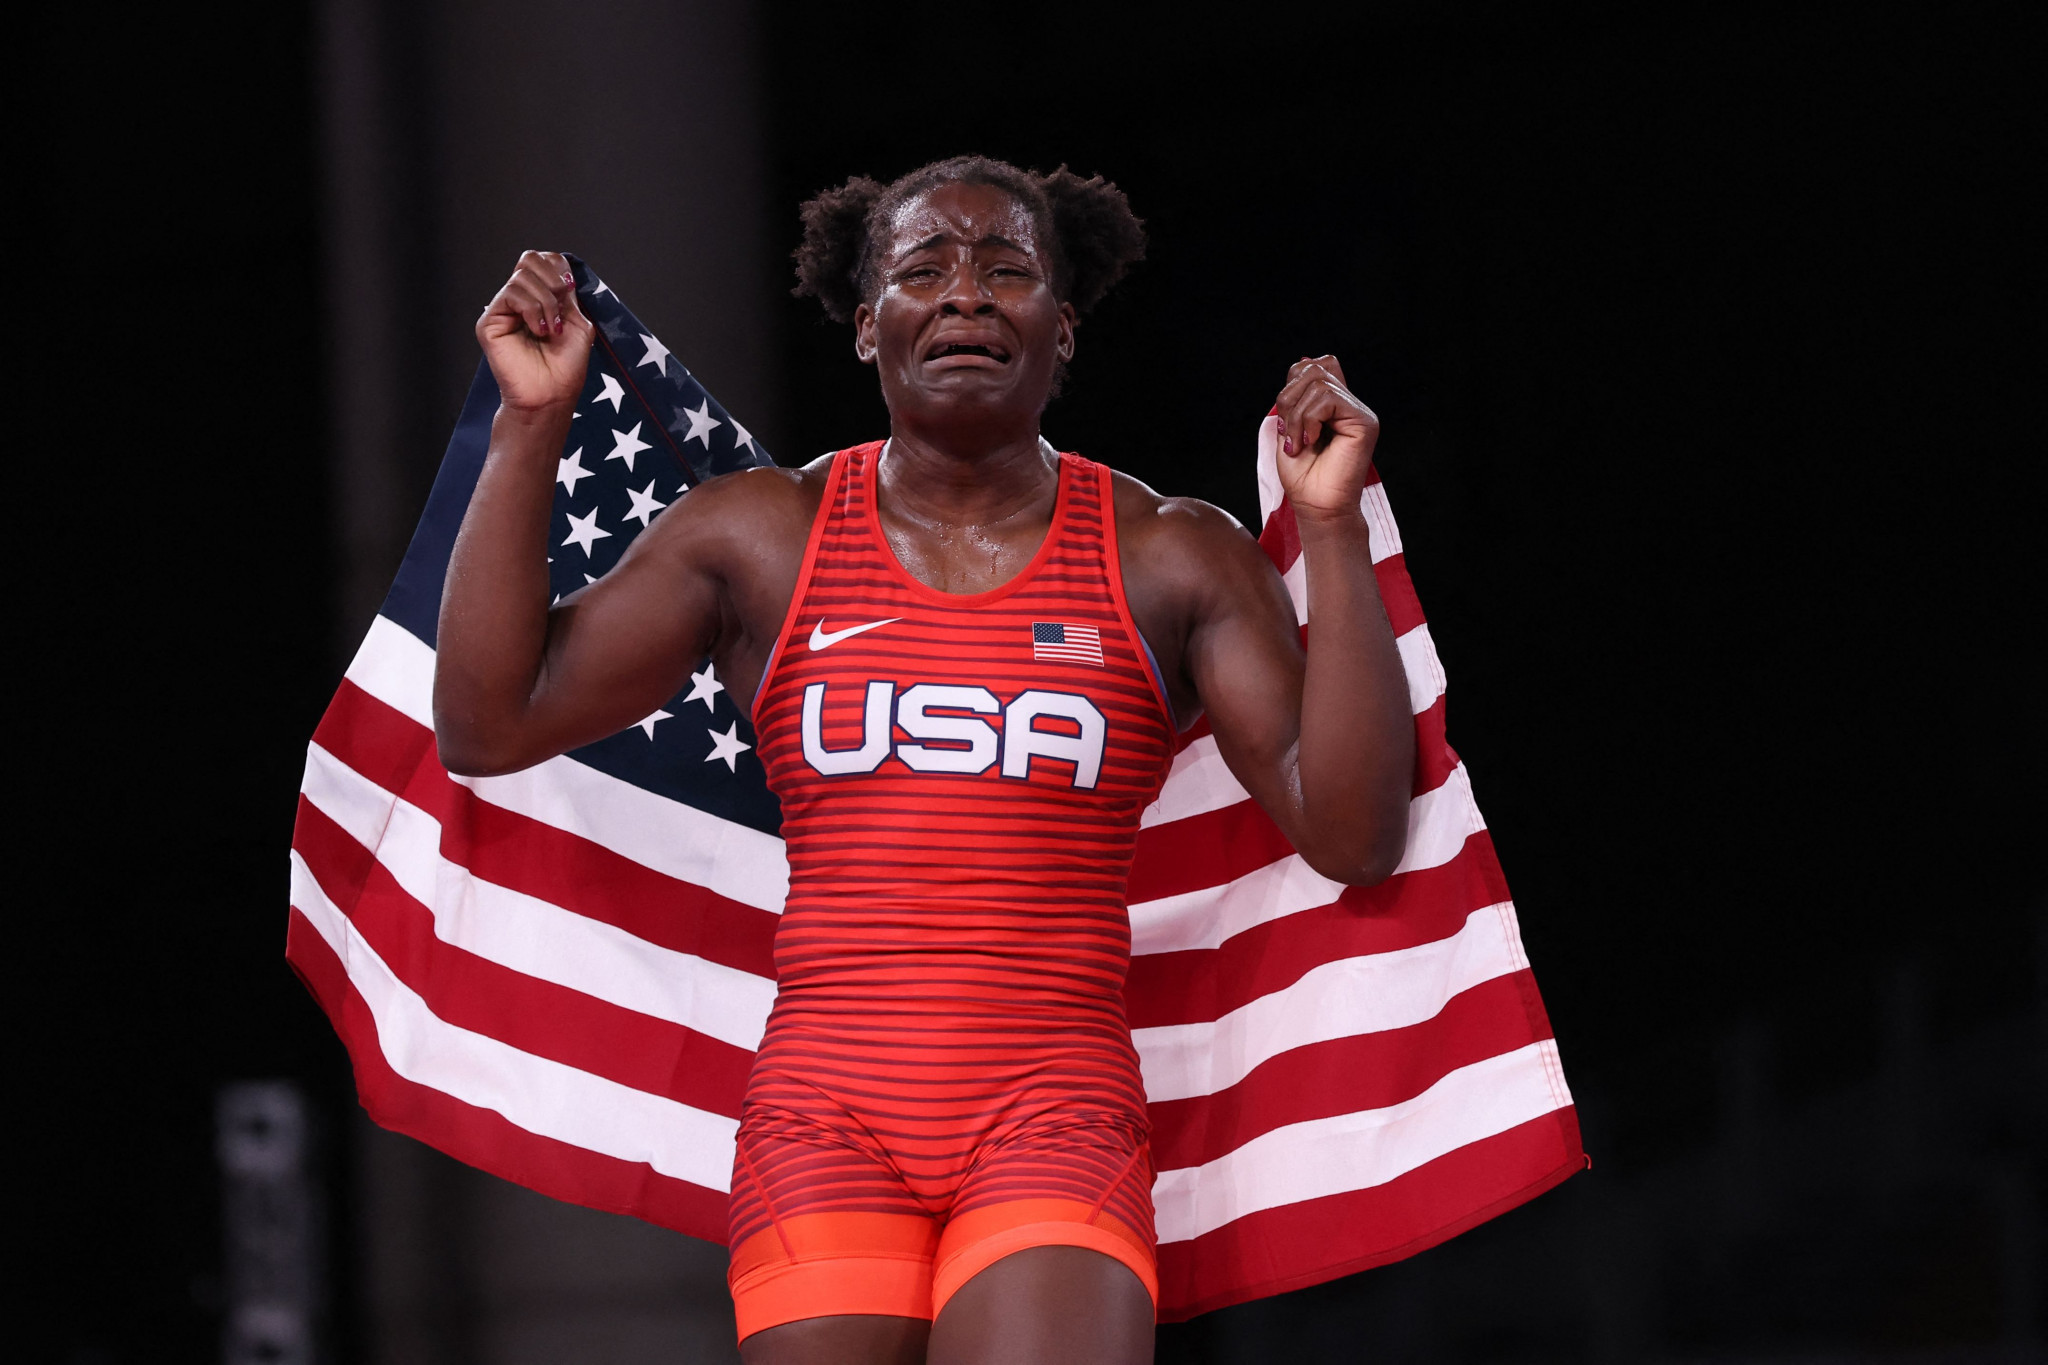 Tamyra Mensah-Stock cried tears of joy after becoming Olympic champion ©Getty Images